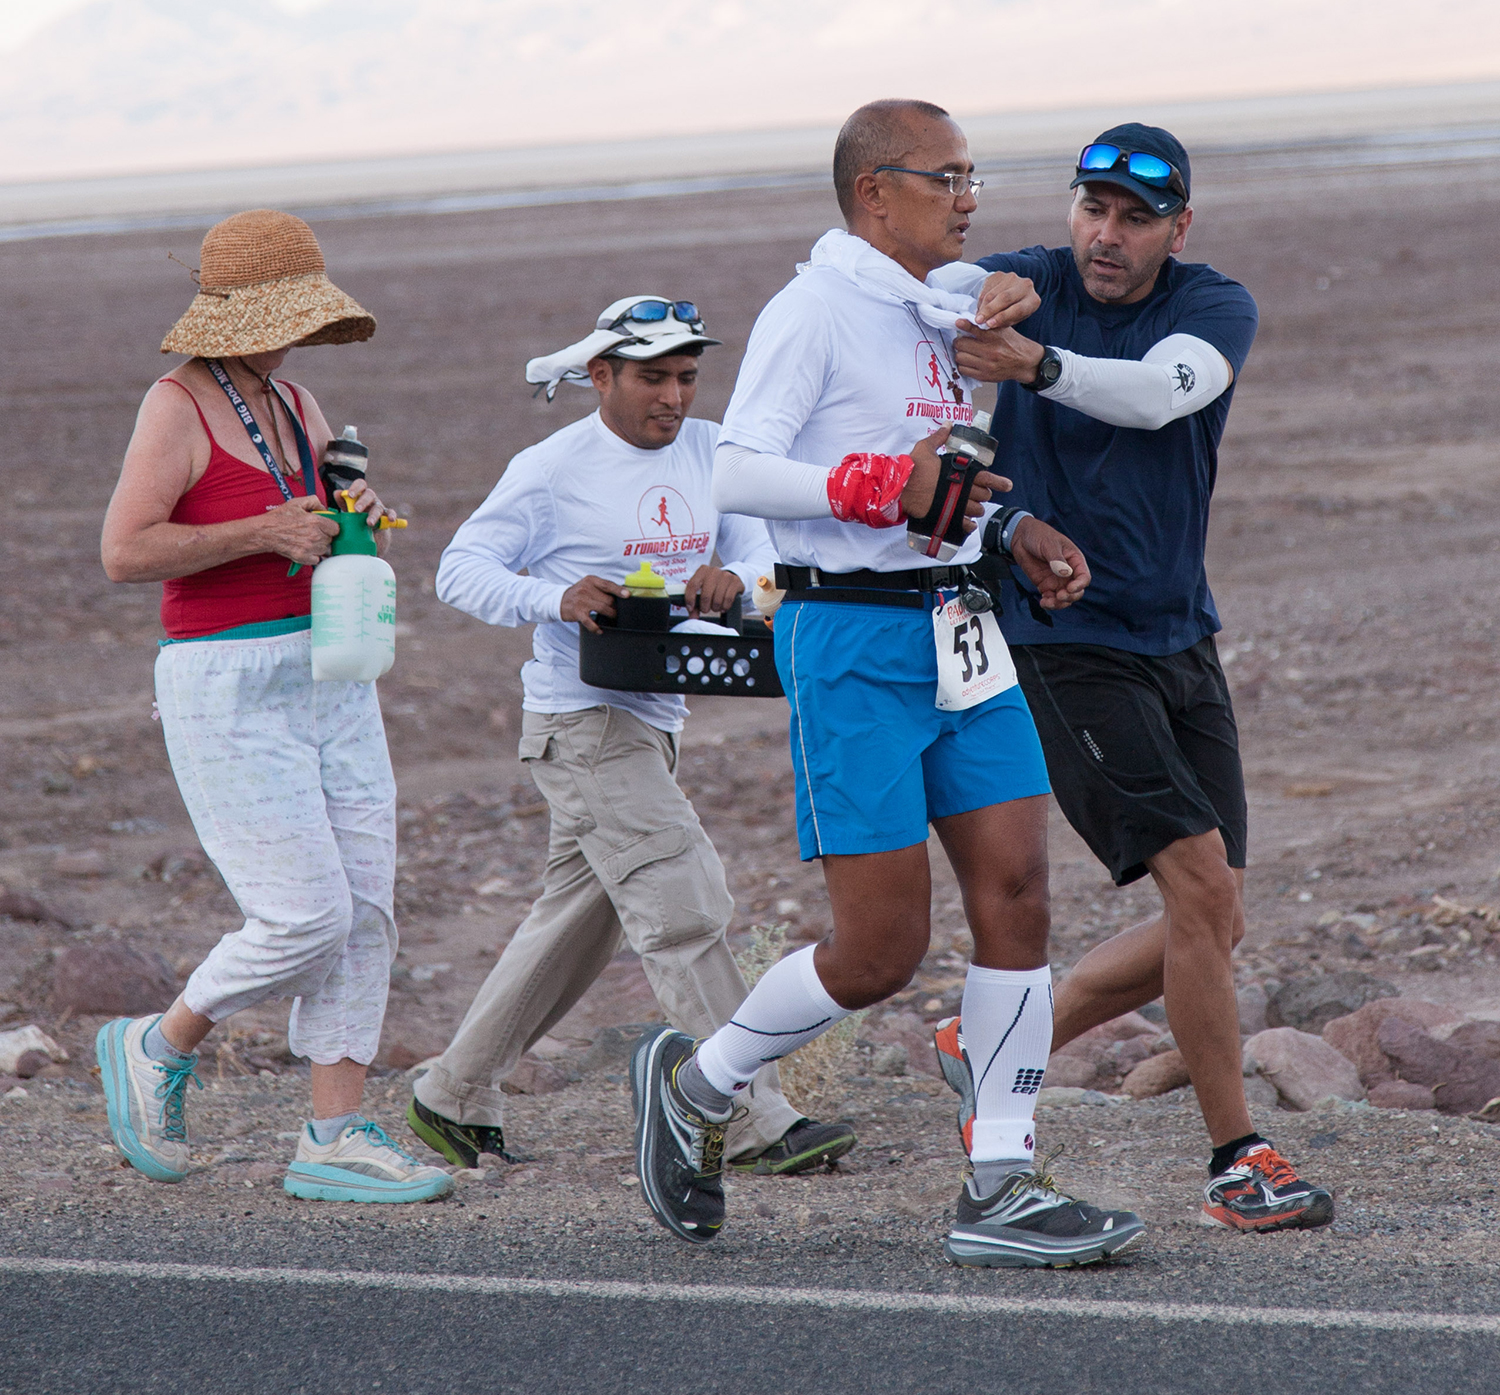 Gaetos' support team provides aid during the run.  (Photo courtesy of Ben Gaetos)